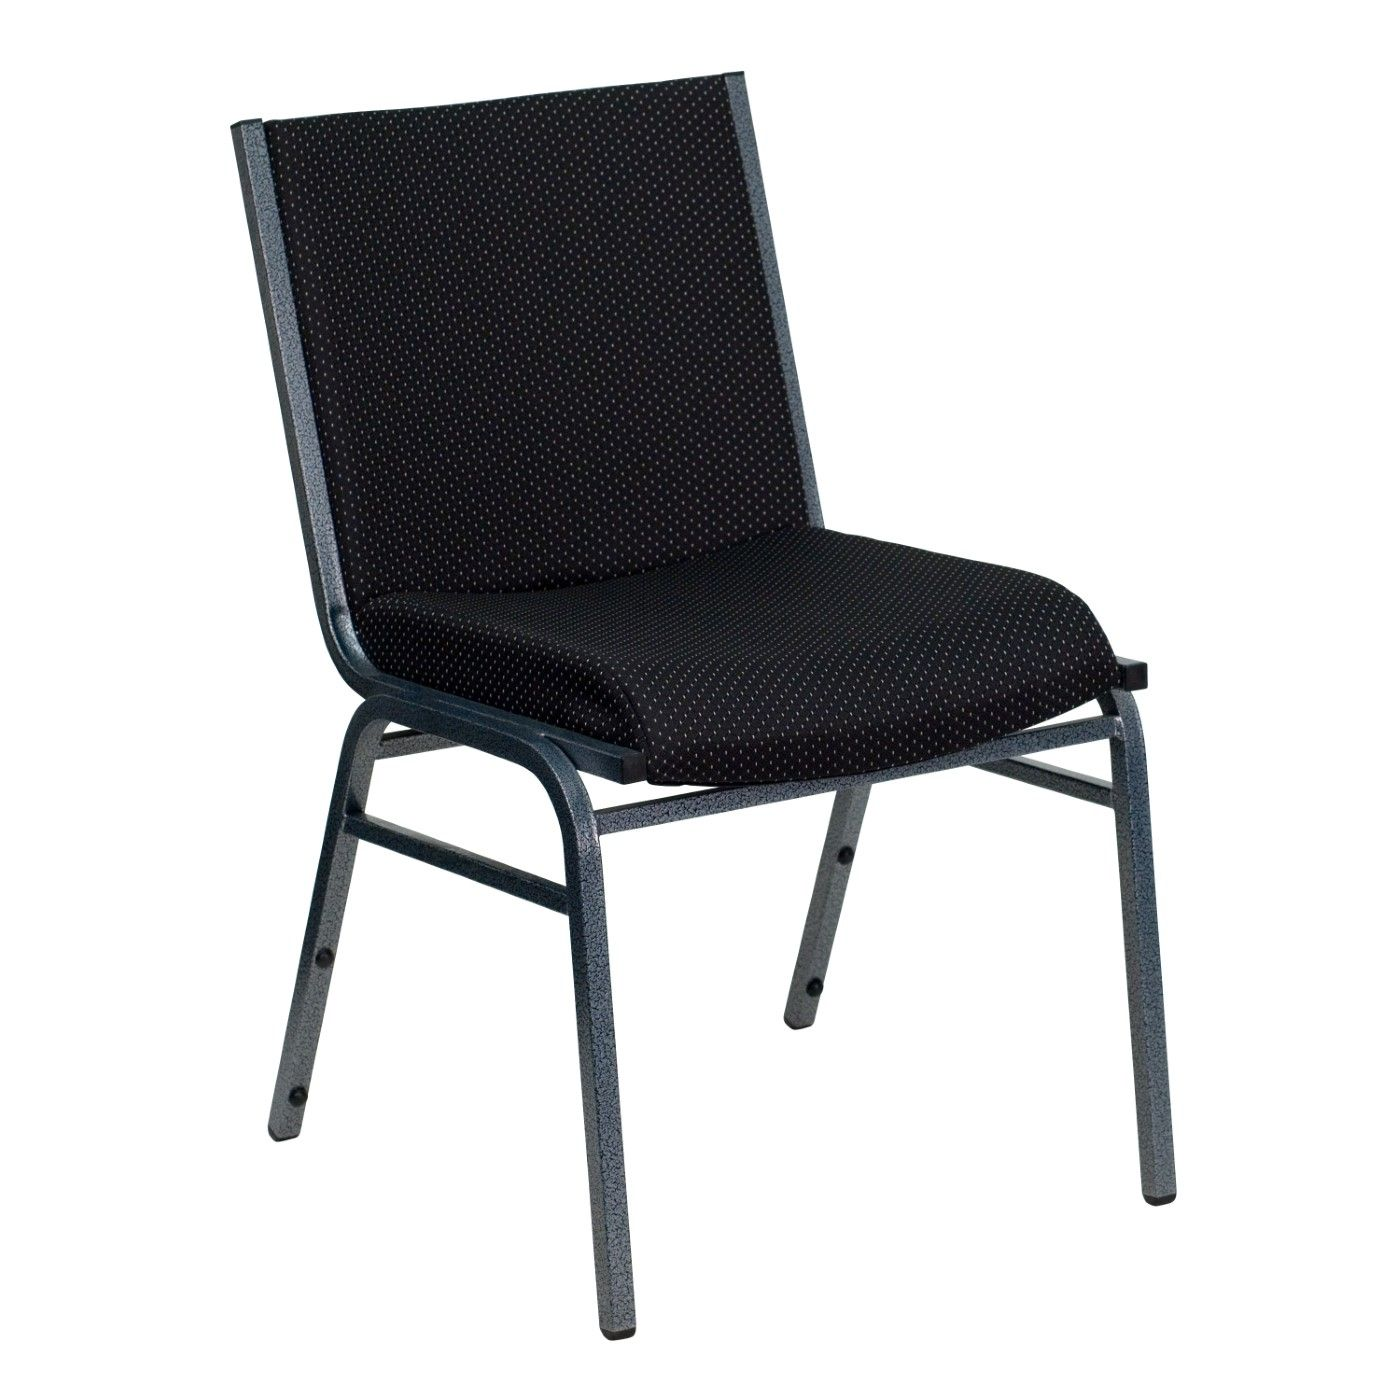 TOUGH ENOUGH Series Heavy Duty Black Dot Fabric Stack Chair